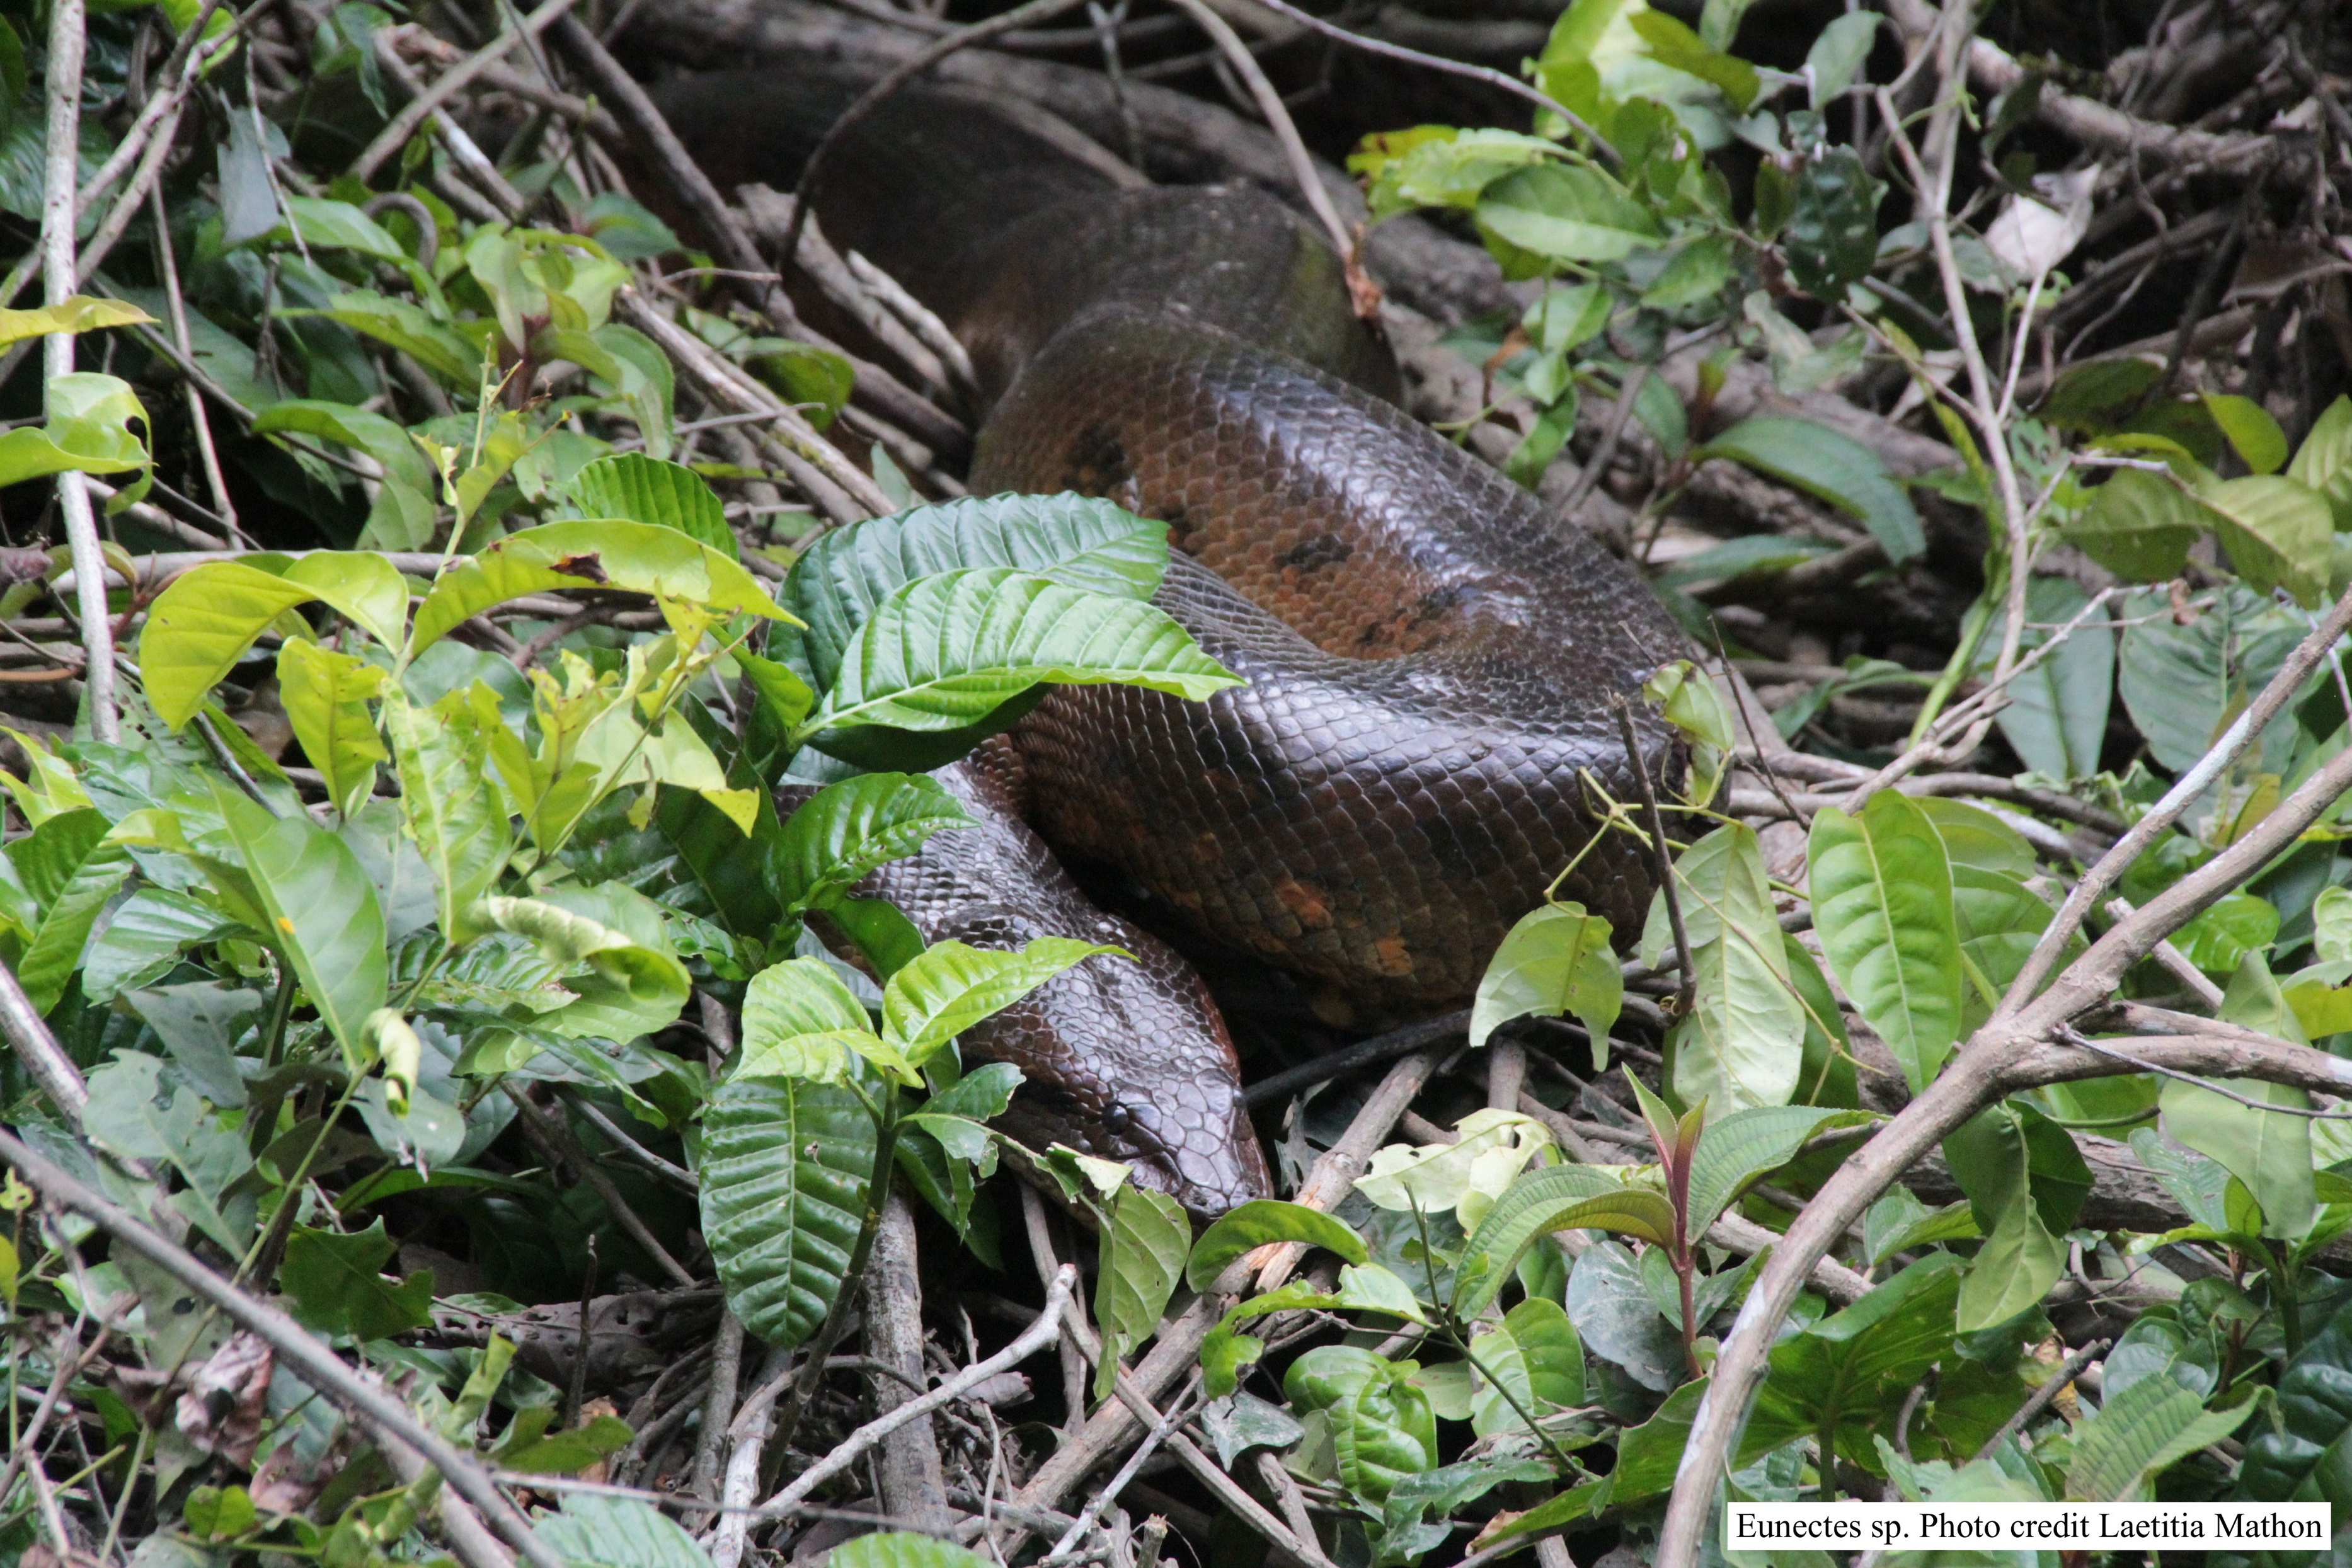 A photo of an anaconda in the Amazon rain forest